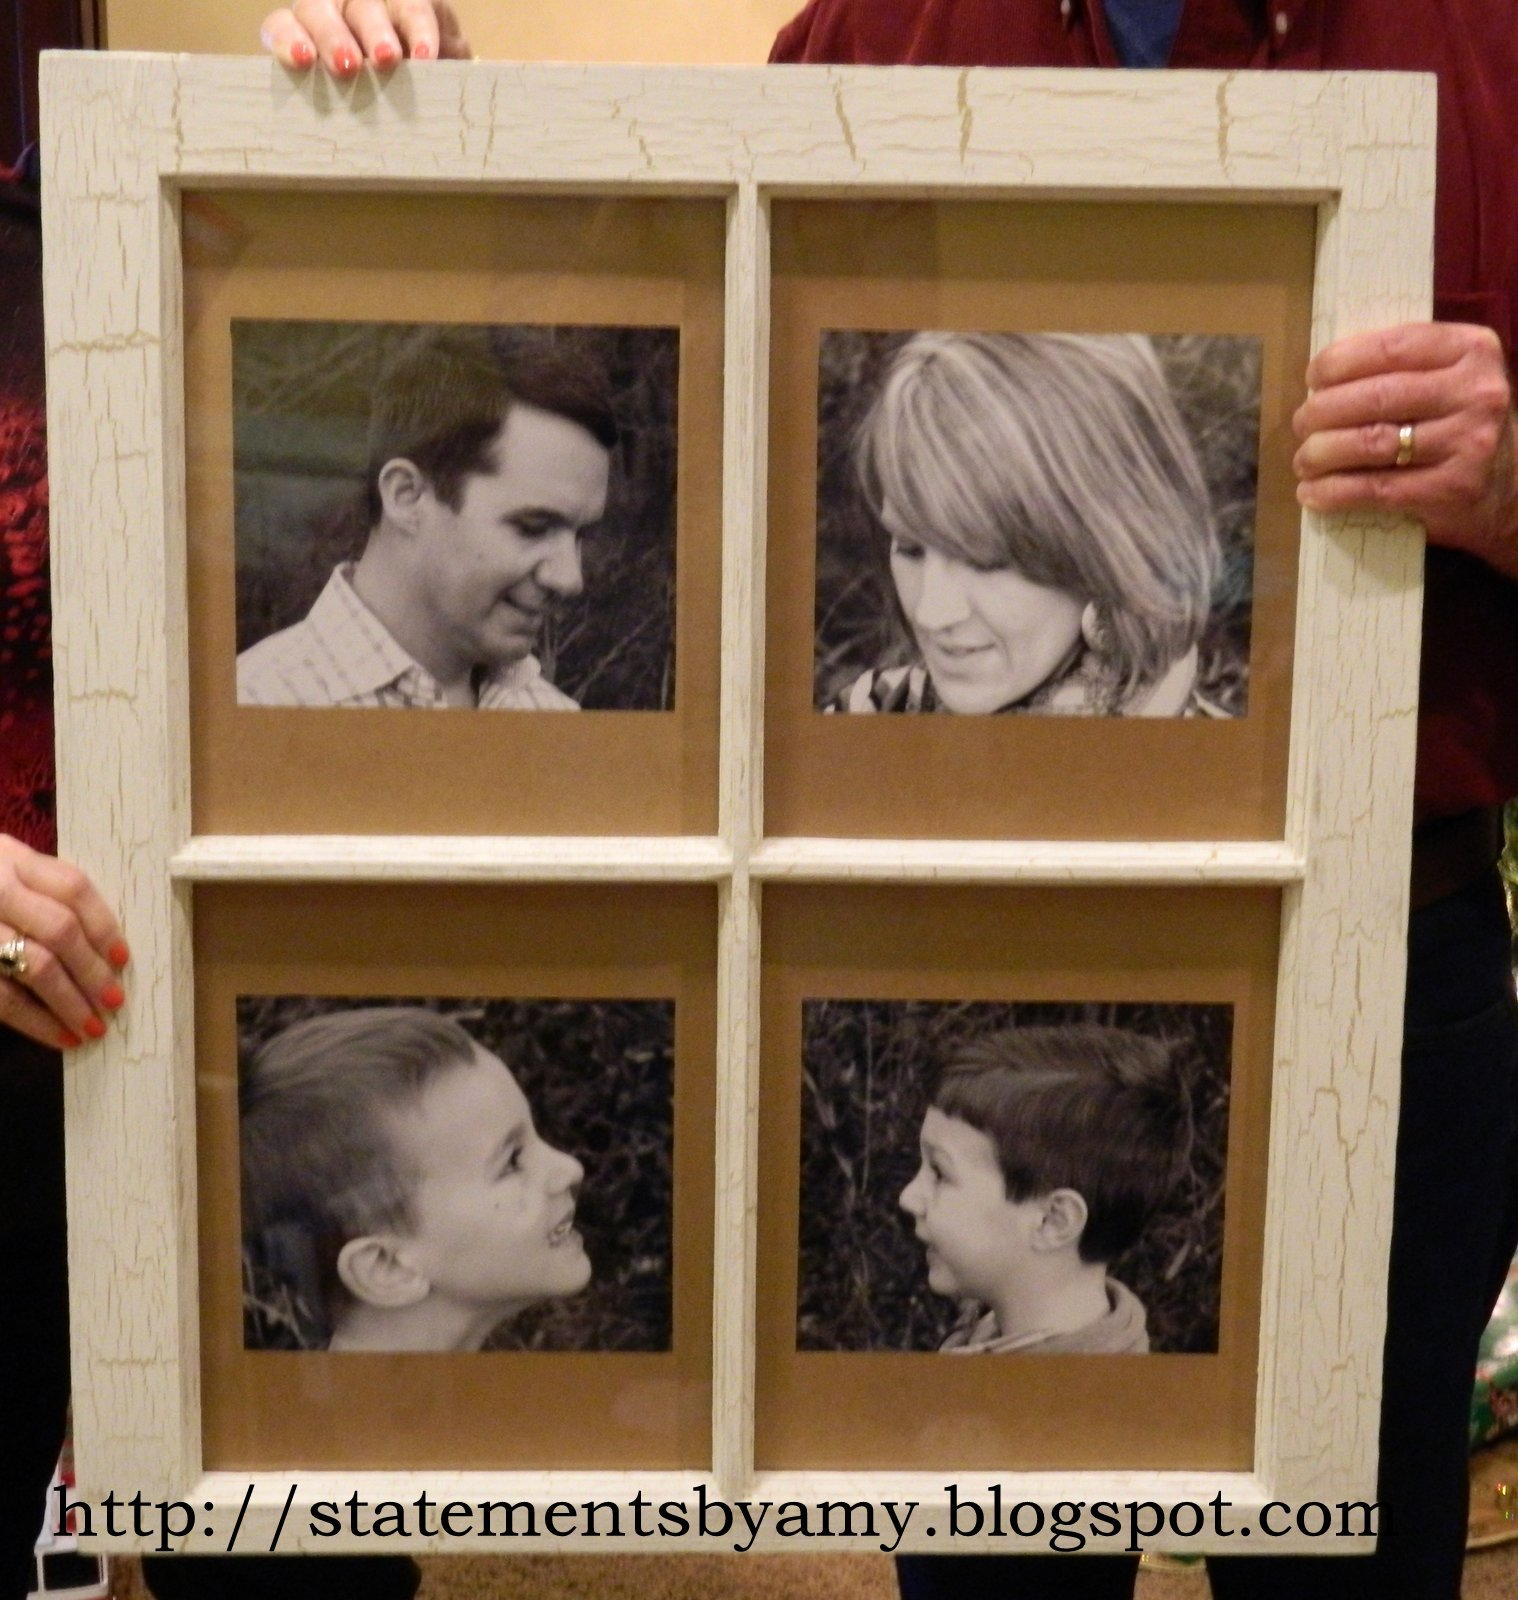 Statements: DIY Window Picture Frame